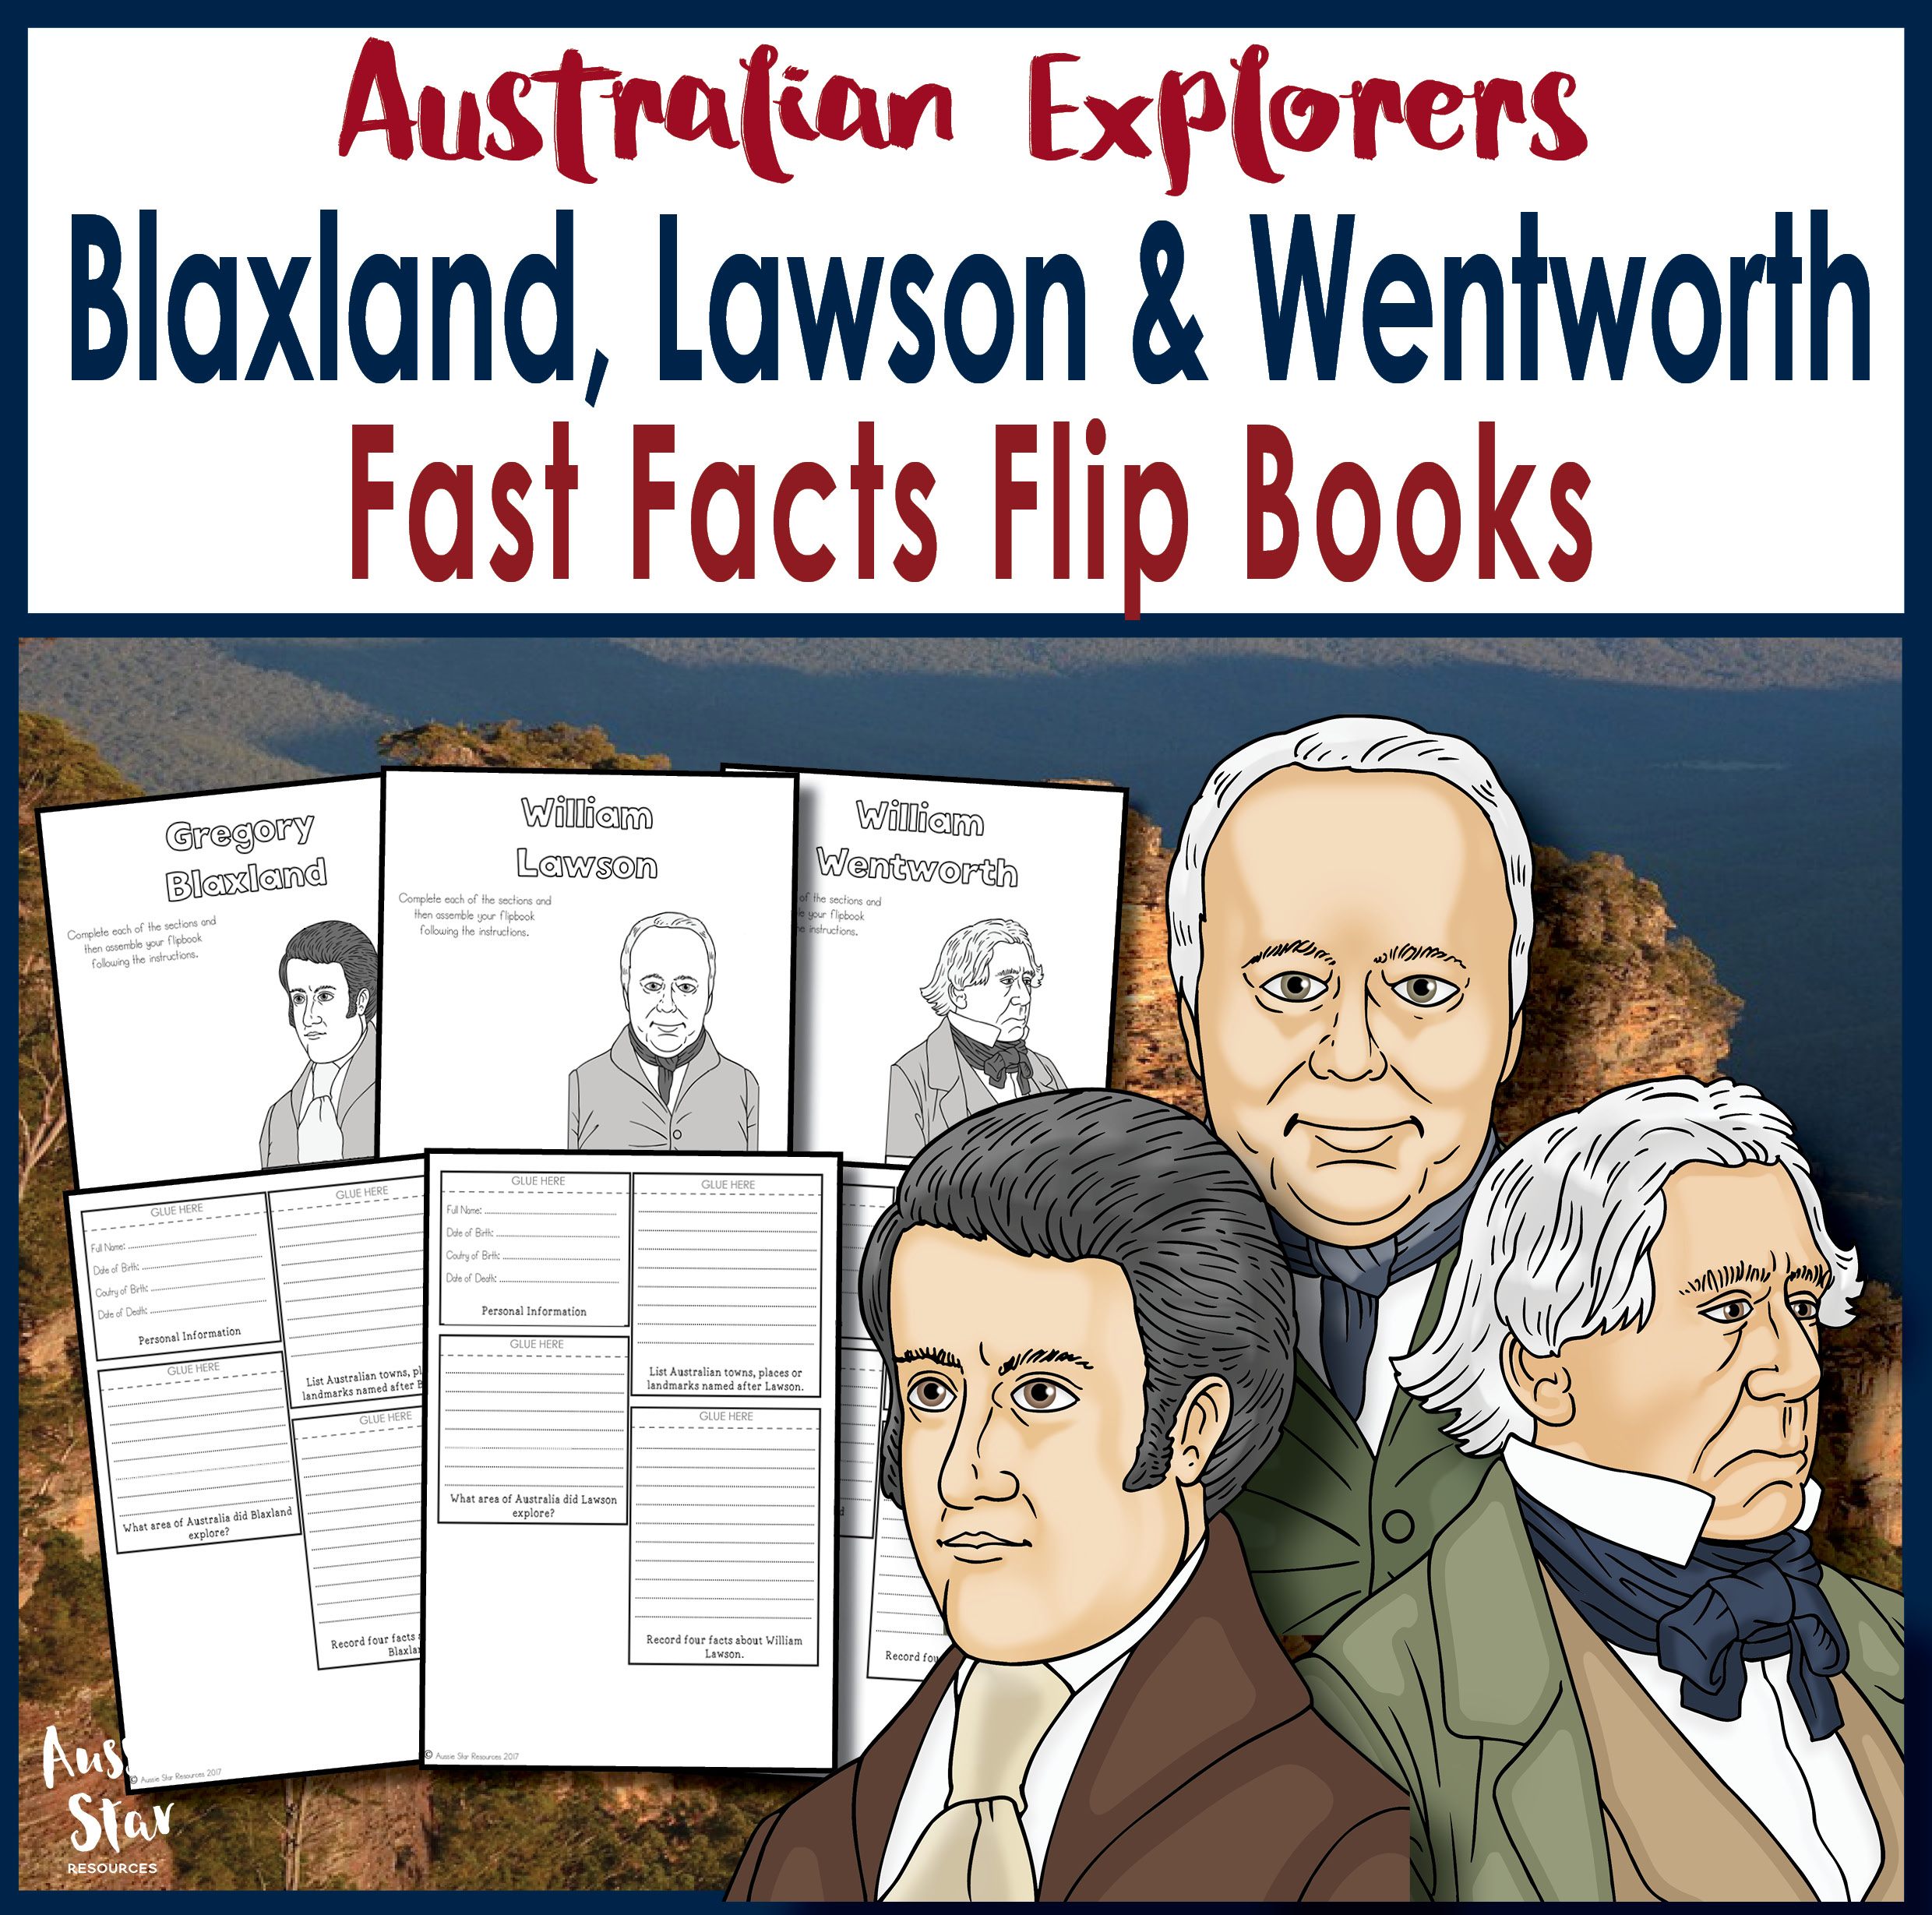 Blaxland, Lawson and Wentworth flip book cover